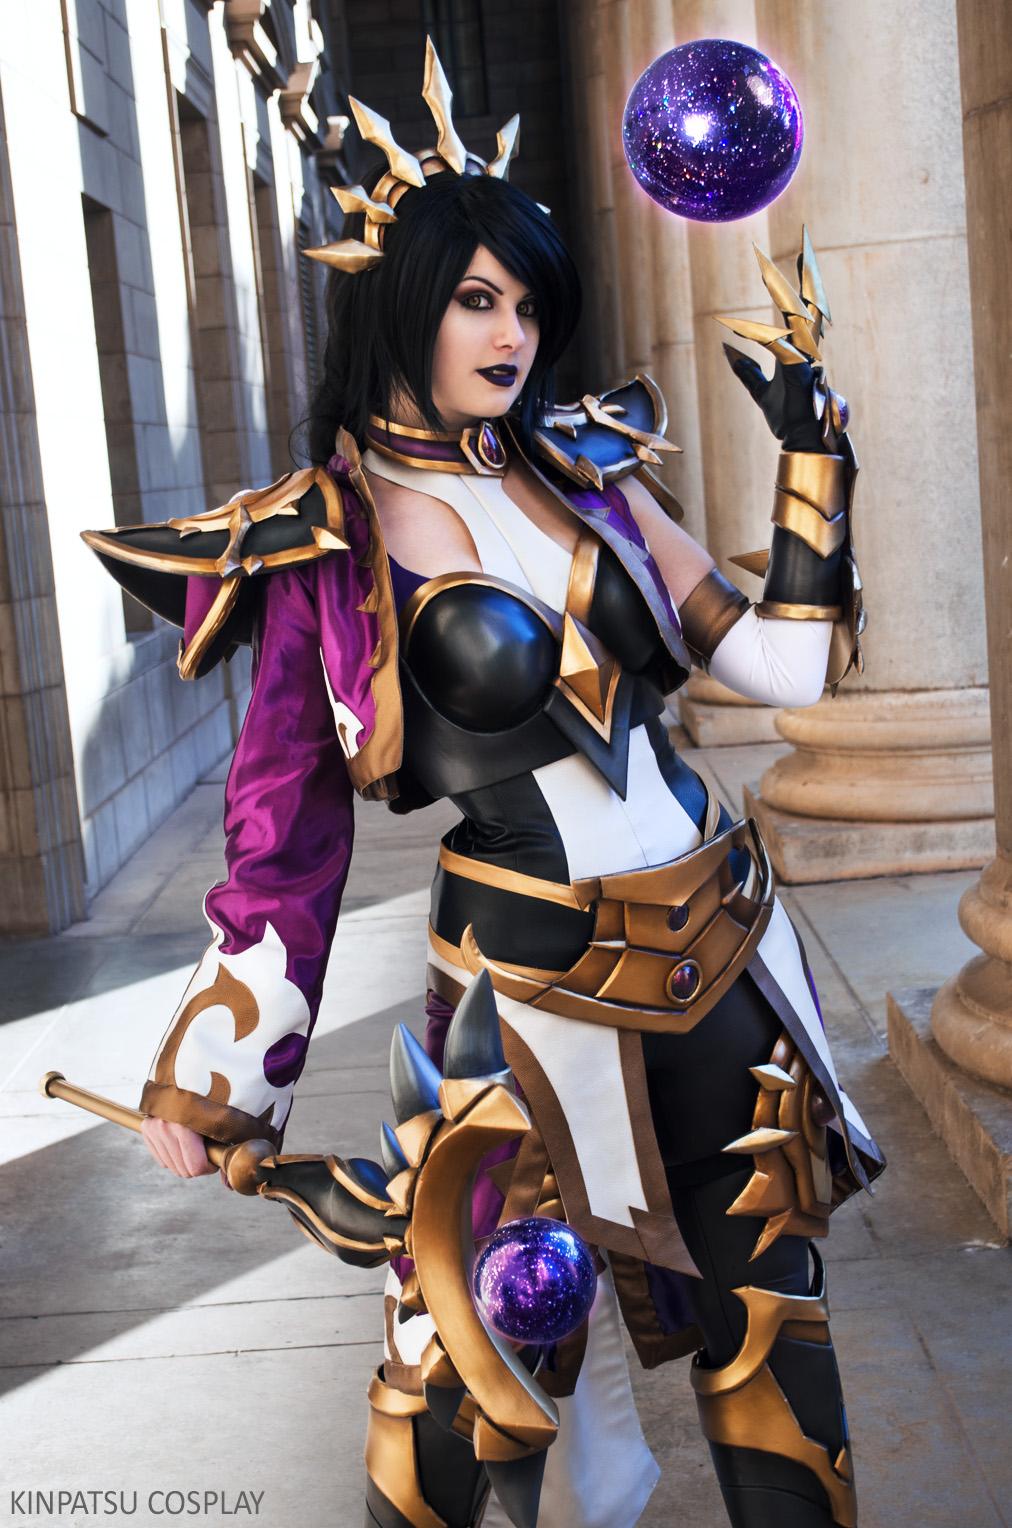 Where to watch heroes of cosplay